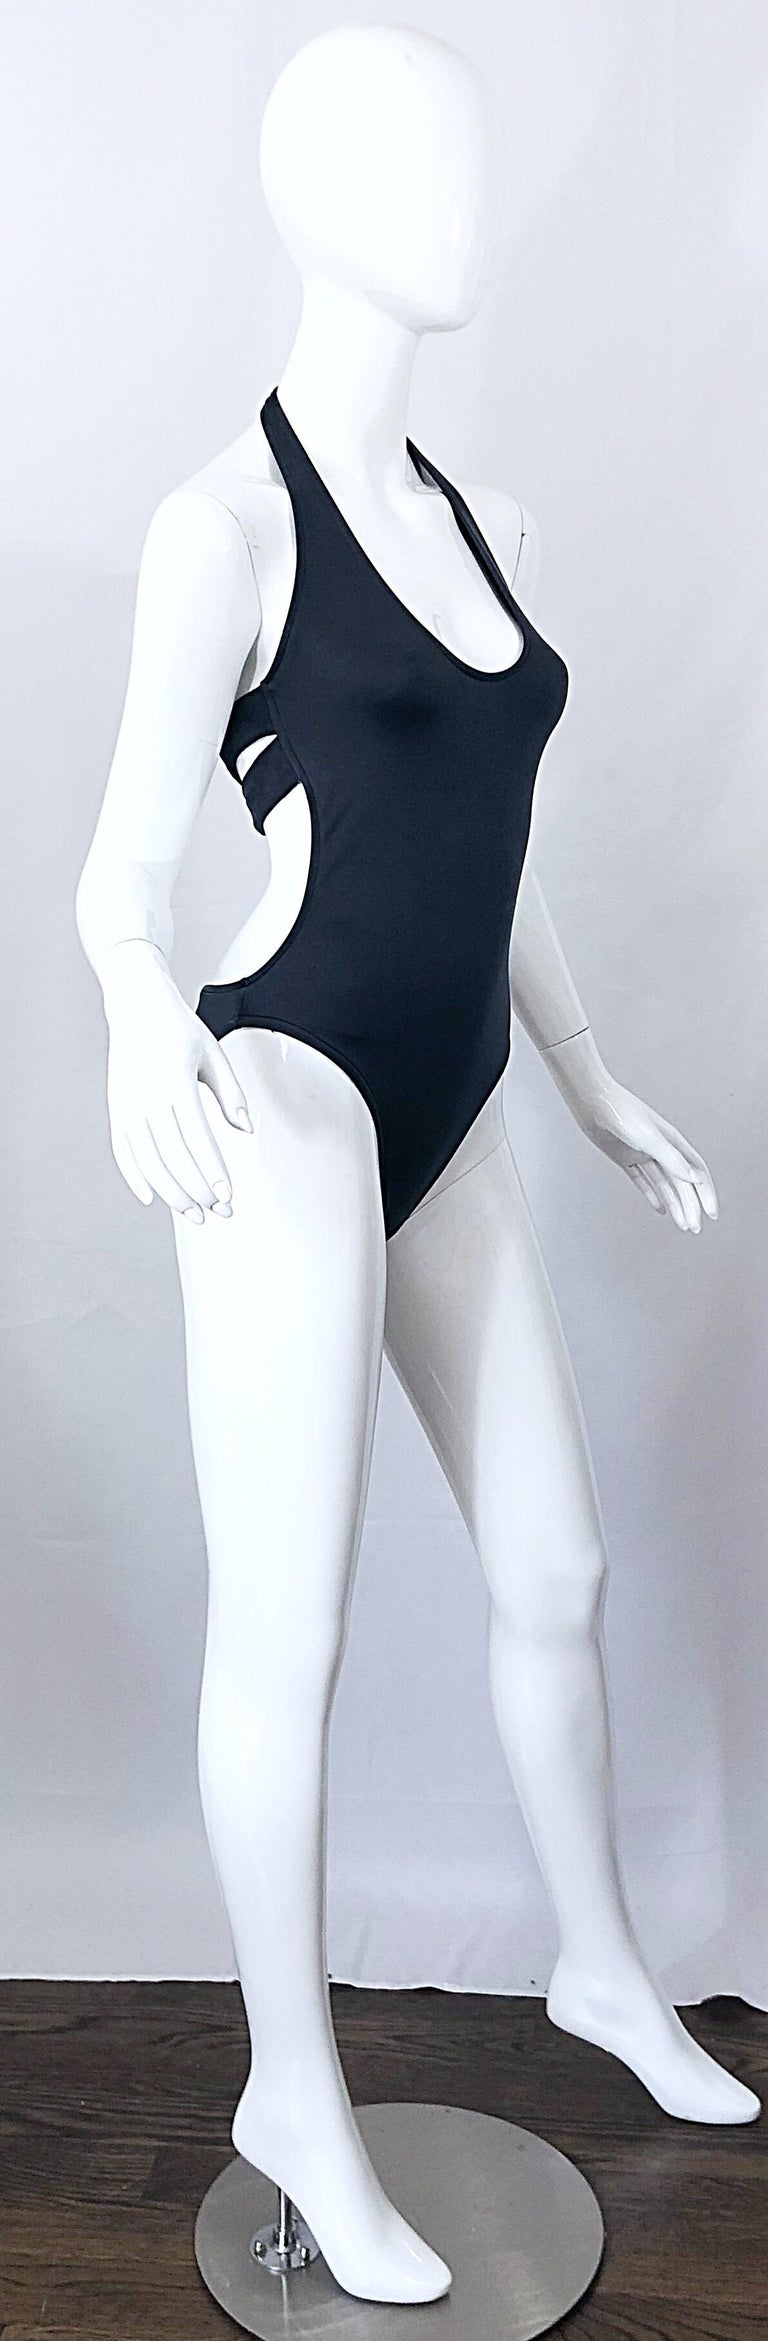 Sexy never worn 90s vintage CALVIN KLEIN slate grey  one piece cut-out swimsuit or bodysuit! The perfect alternative to black, this beauty features just the right amount of metallic sheen. Criss-cross cut out back. Easy to wear, and super slimming.